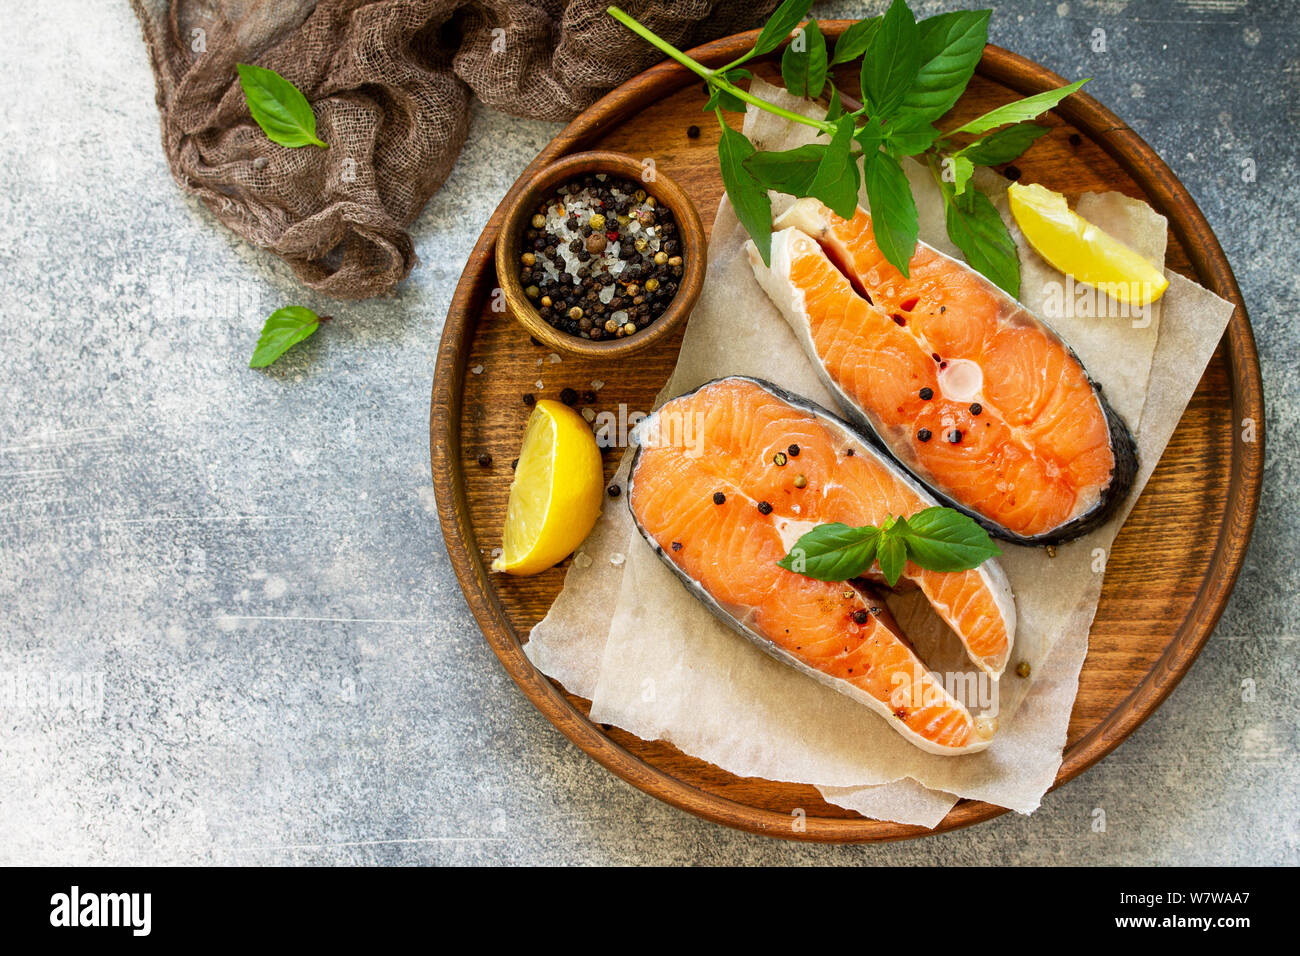 Steak raw fish prepared for cooking. Salmon wiht basil and spices on slate table. Top view flat lay. Stock Photo